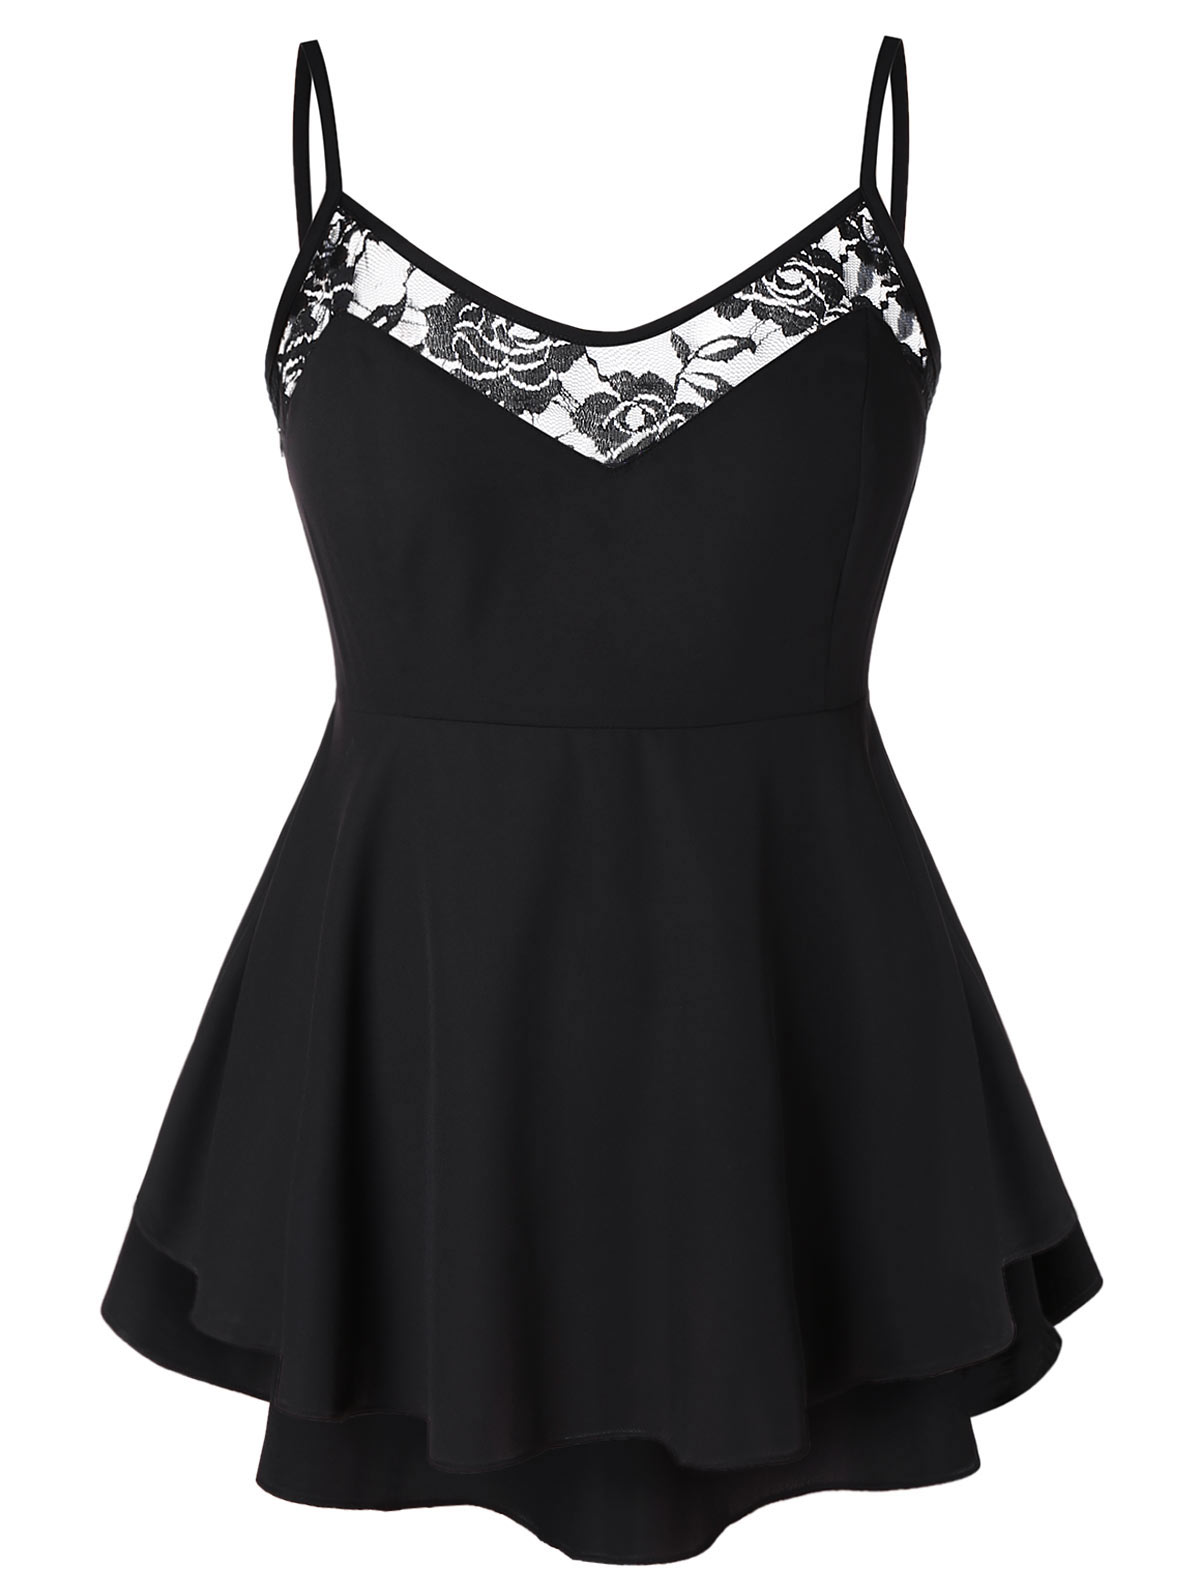 Wipalo Plus Size Women Camis Lace Spaghetti Strap High Low Peplum Tank Top A-Line Sexy Summer Tops Casual Club Underwear Femme